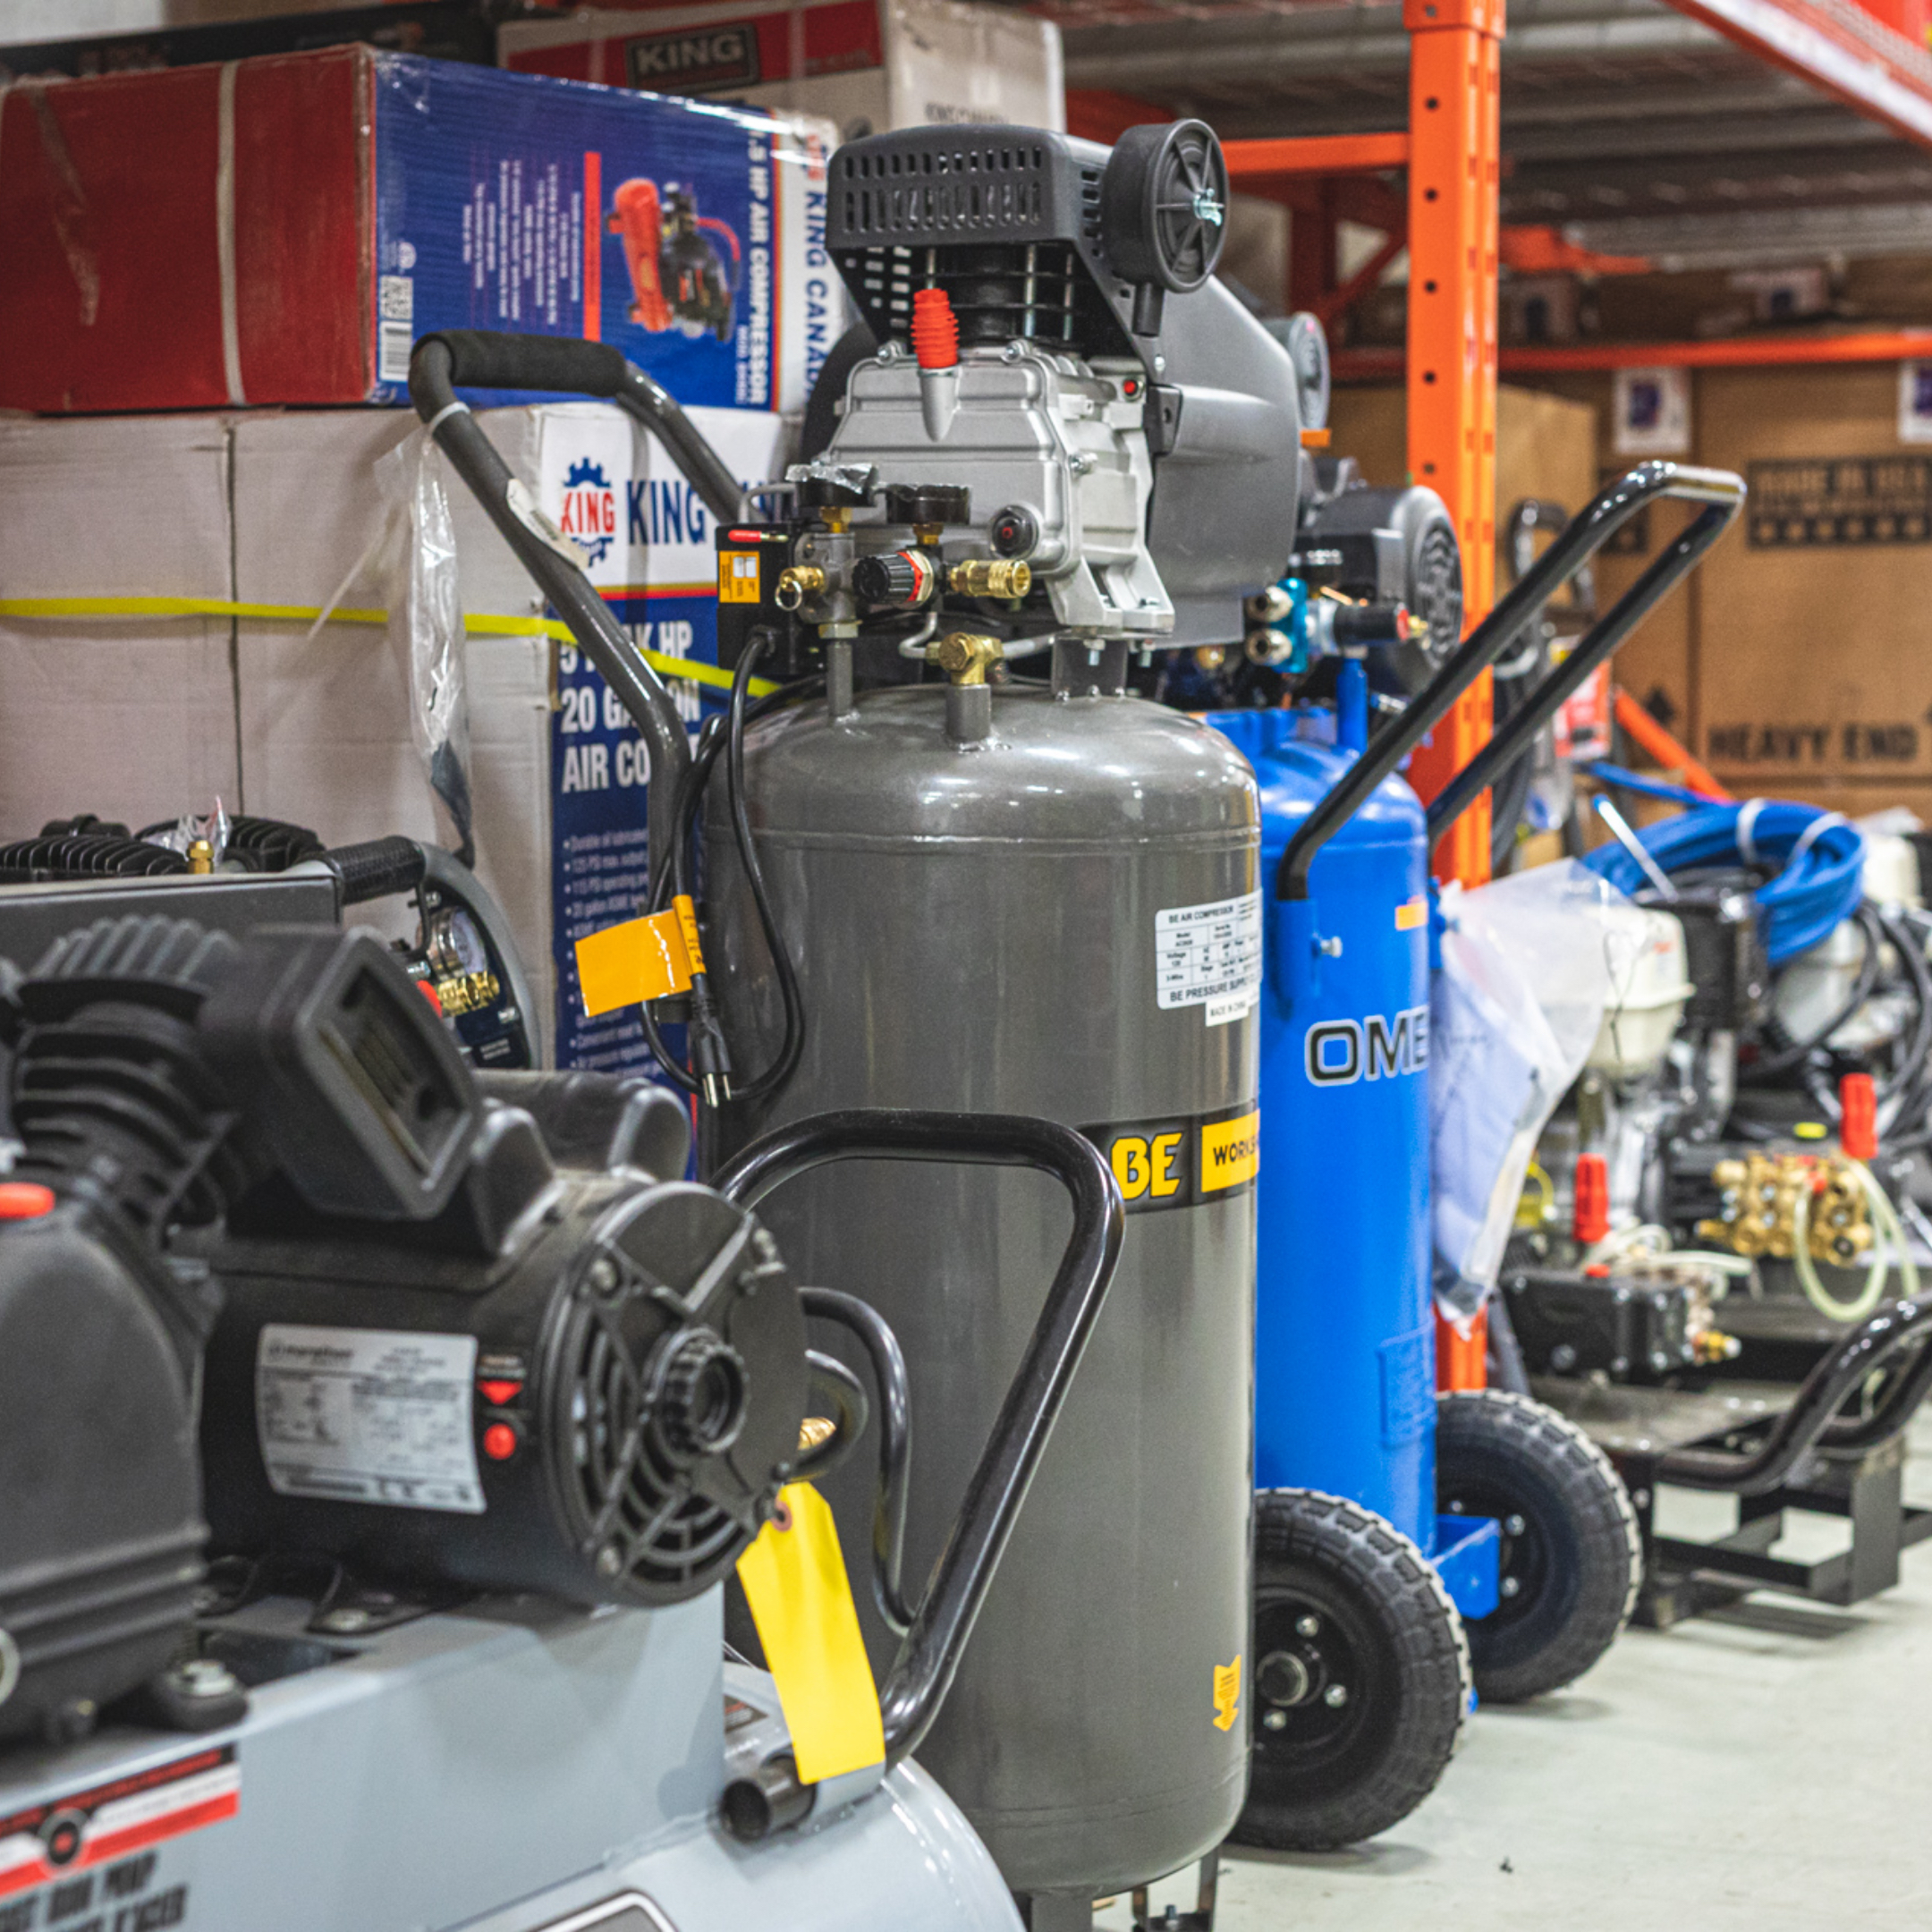 Air Compressors Photo